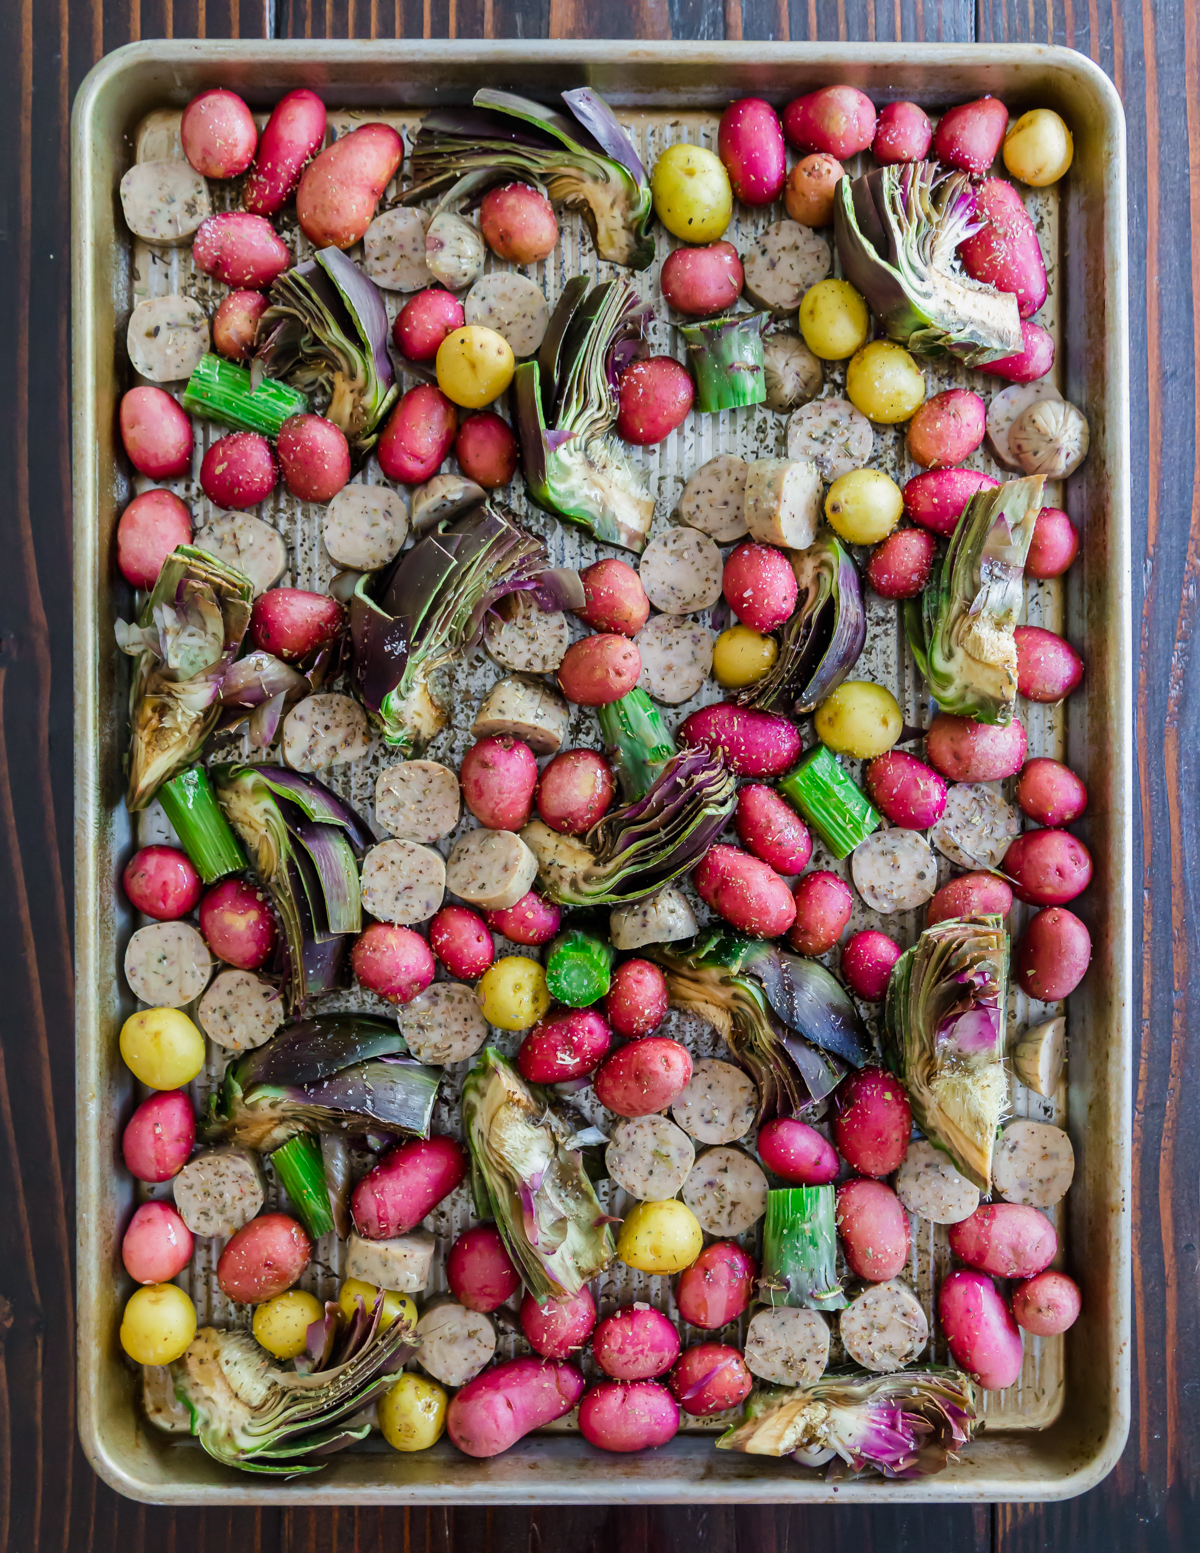 Sliced sausage links, baby potatoes and purple artichokes are added to a baking sheet for this easy dinner recipe.